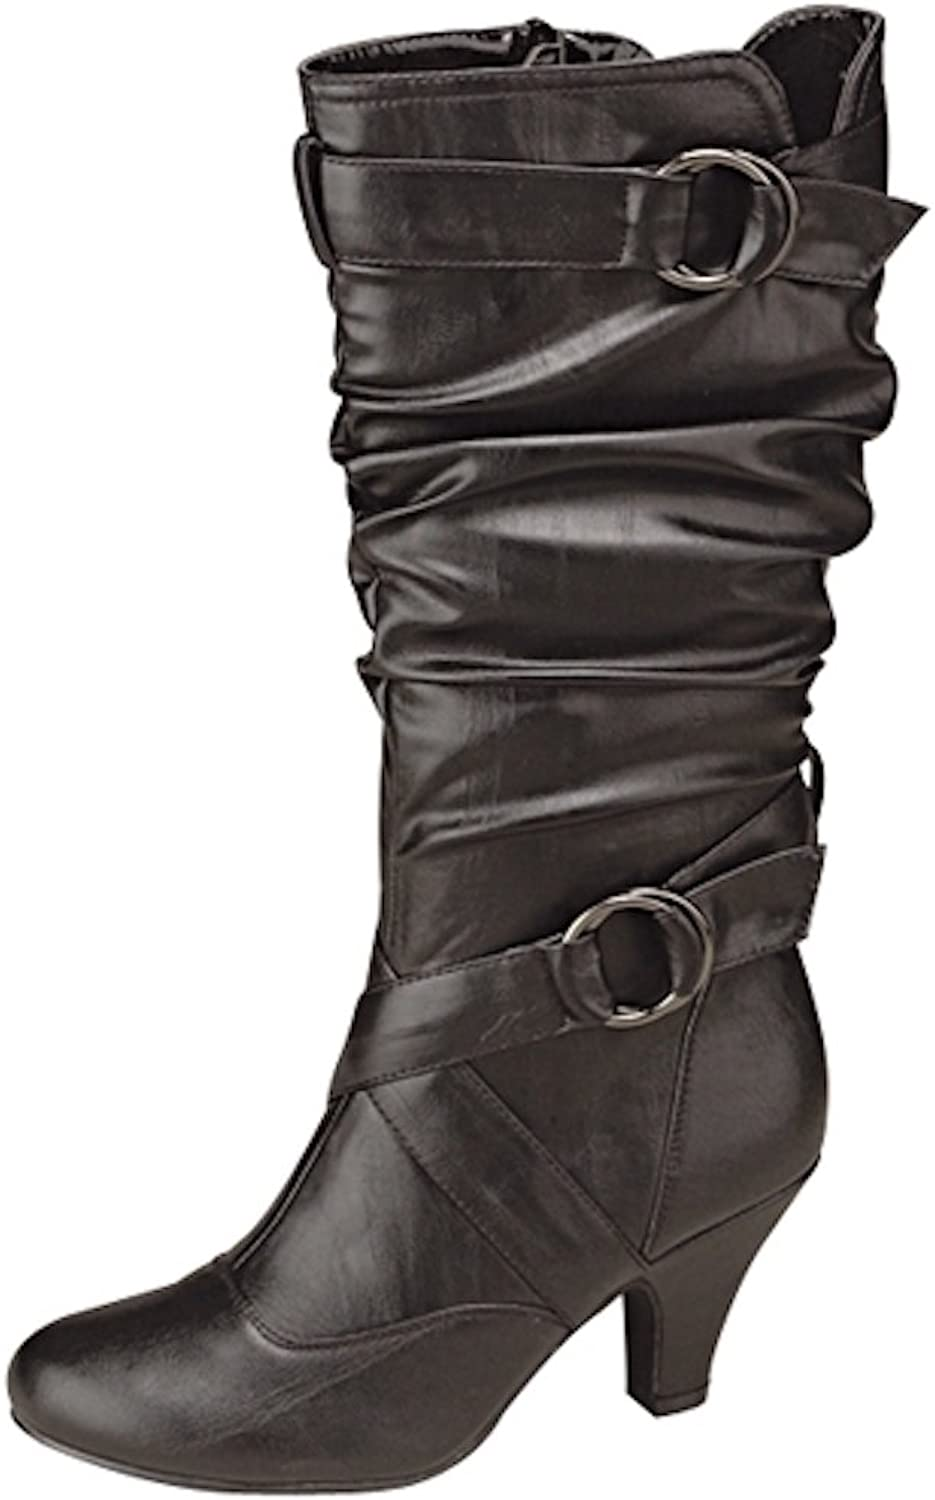 Top Moda Women's Auto-2 Round Toe Dress Boot,5.5 B(M) US,Black-08